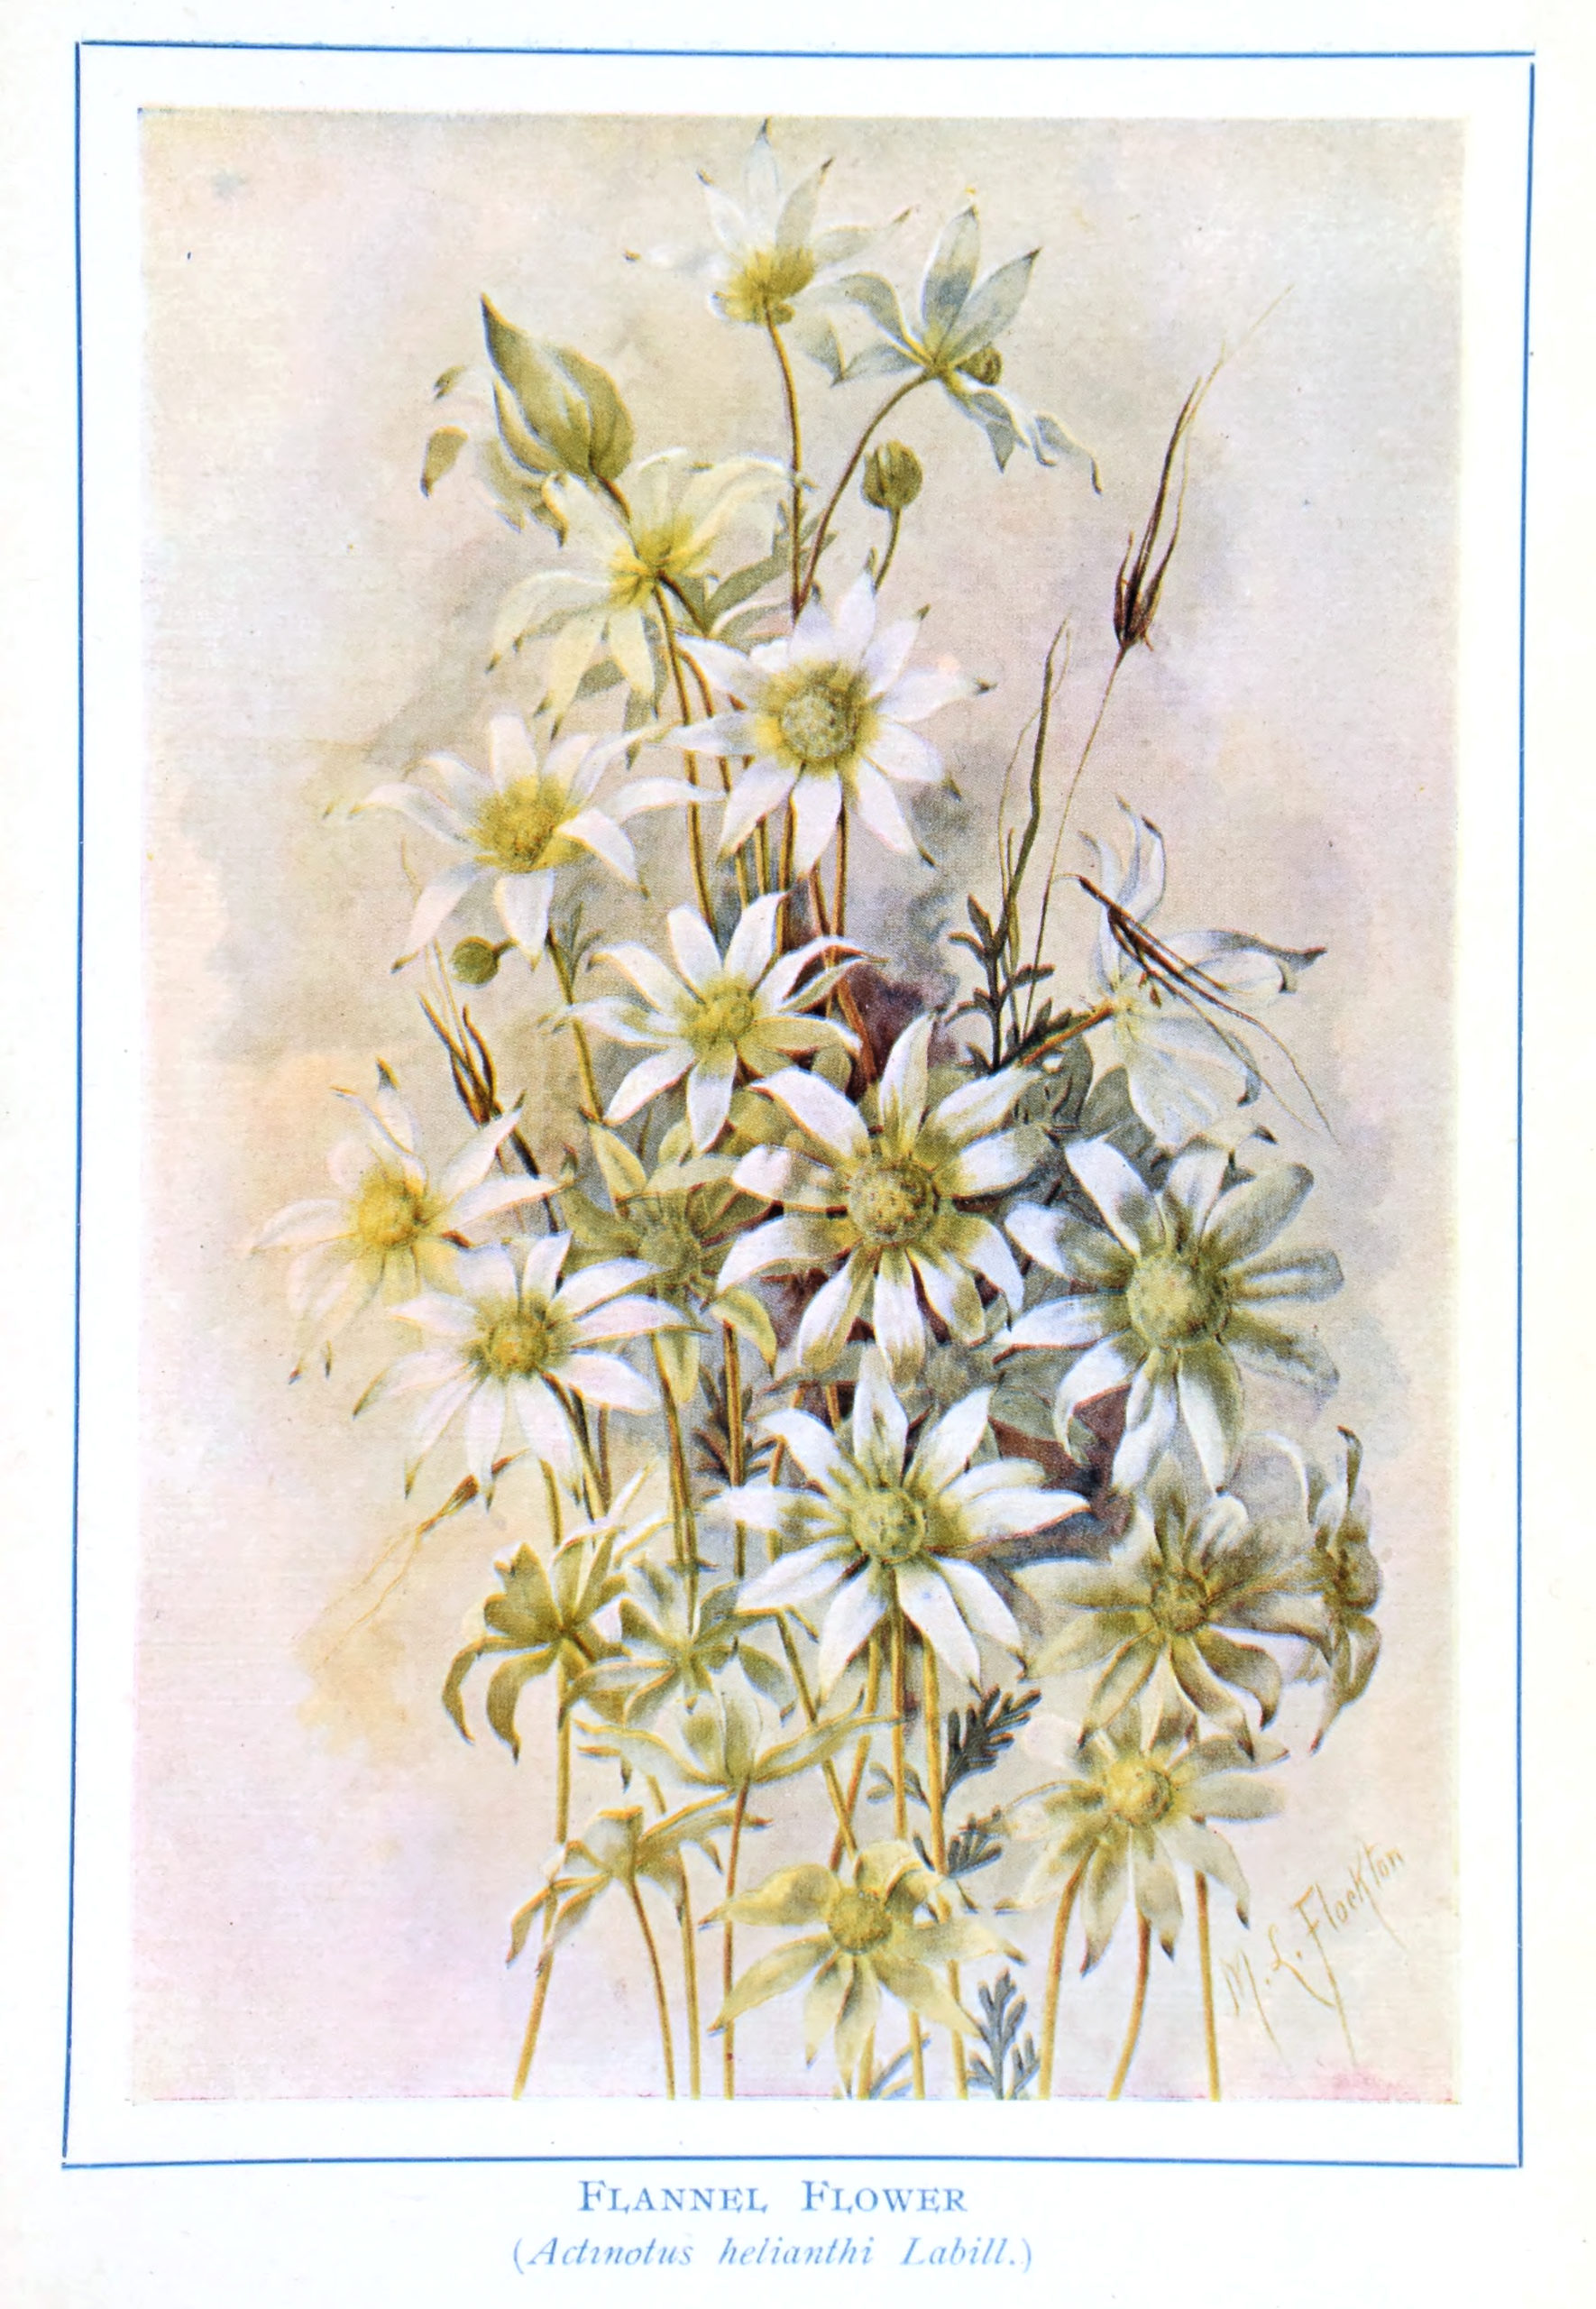 Vintage Botanical Prints - 42 in a series - Flannel Flower (Actmotns helianthi Labill.) from Autralian Wild Flowers (1912)